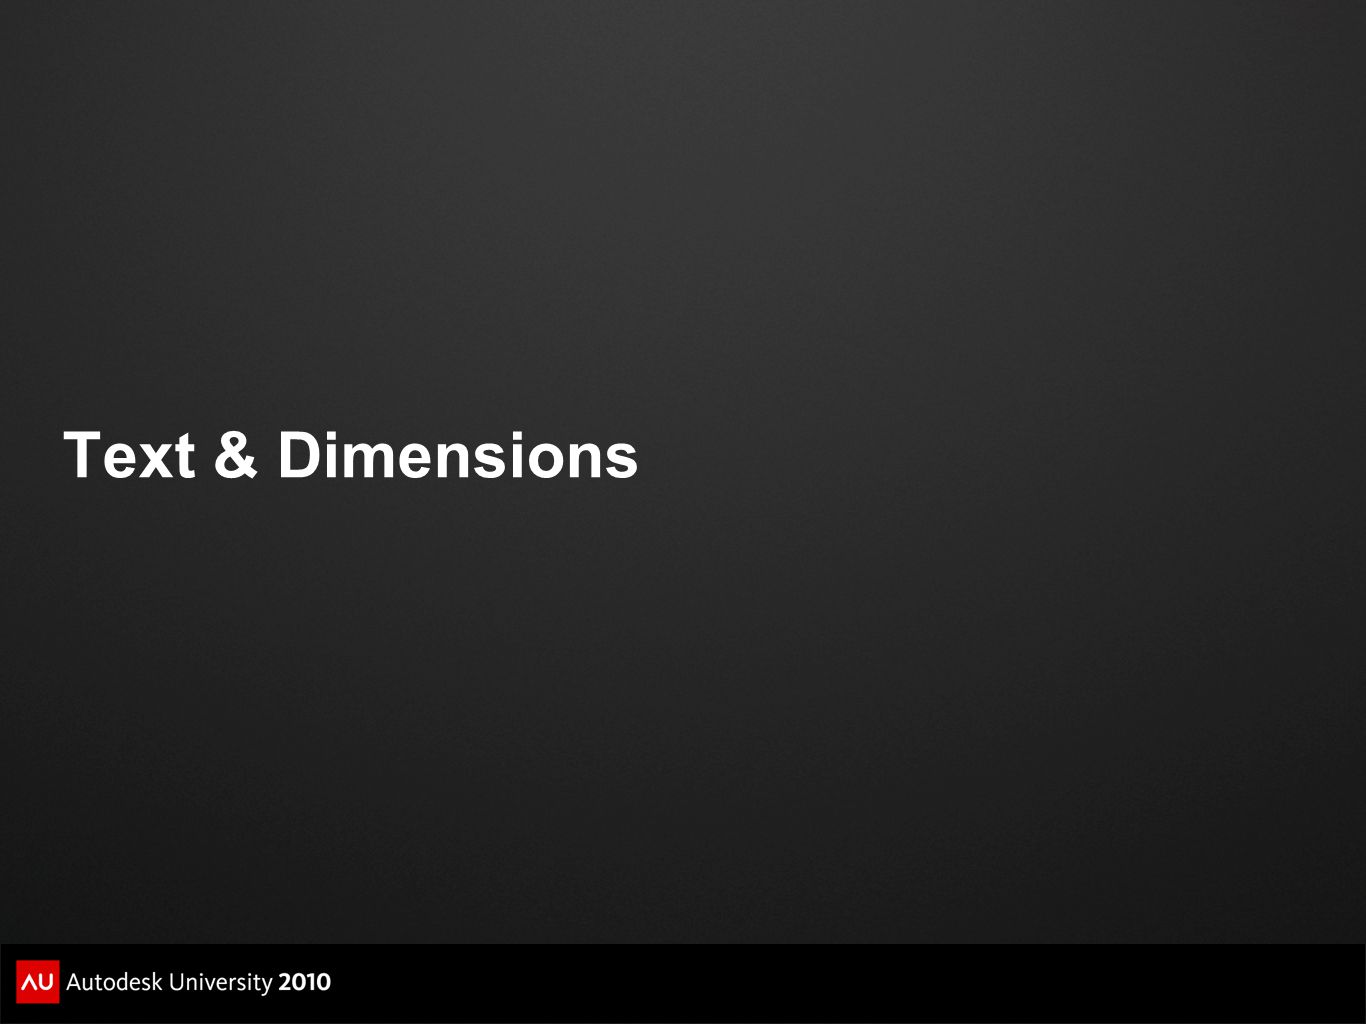 Text & Dimensions